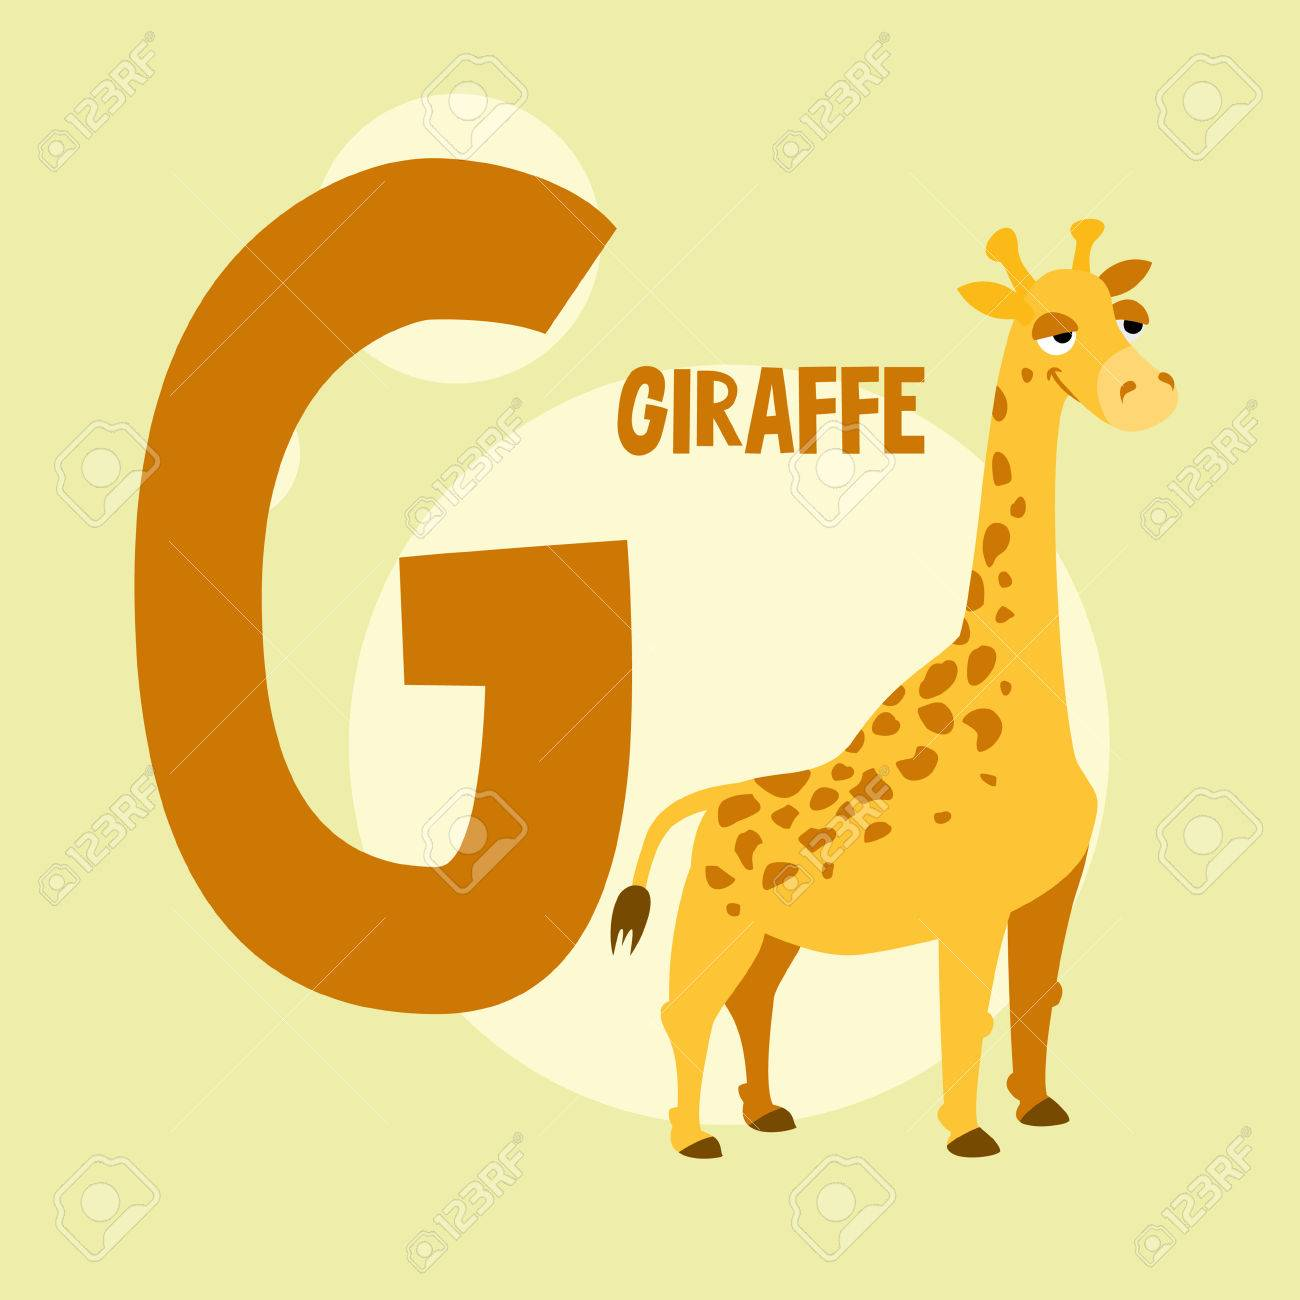 Funny orange giraffe on the background of the letter g royalty free funny orange giraffe on the background of the letter g stock vector 64091387 spiritdancerdesigns Gallery